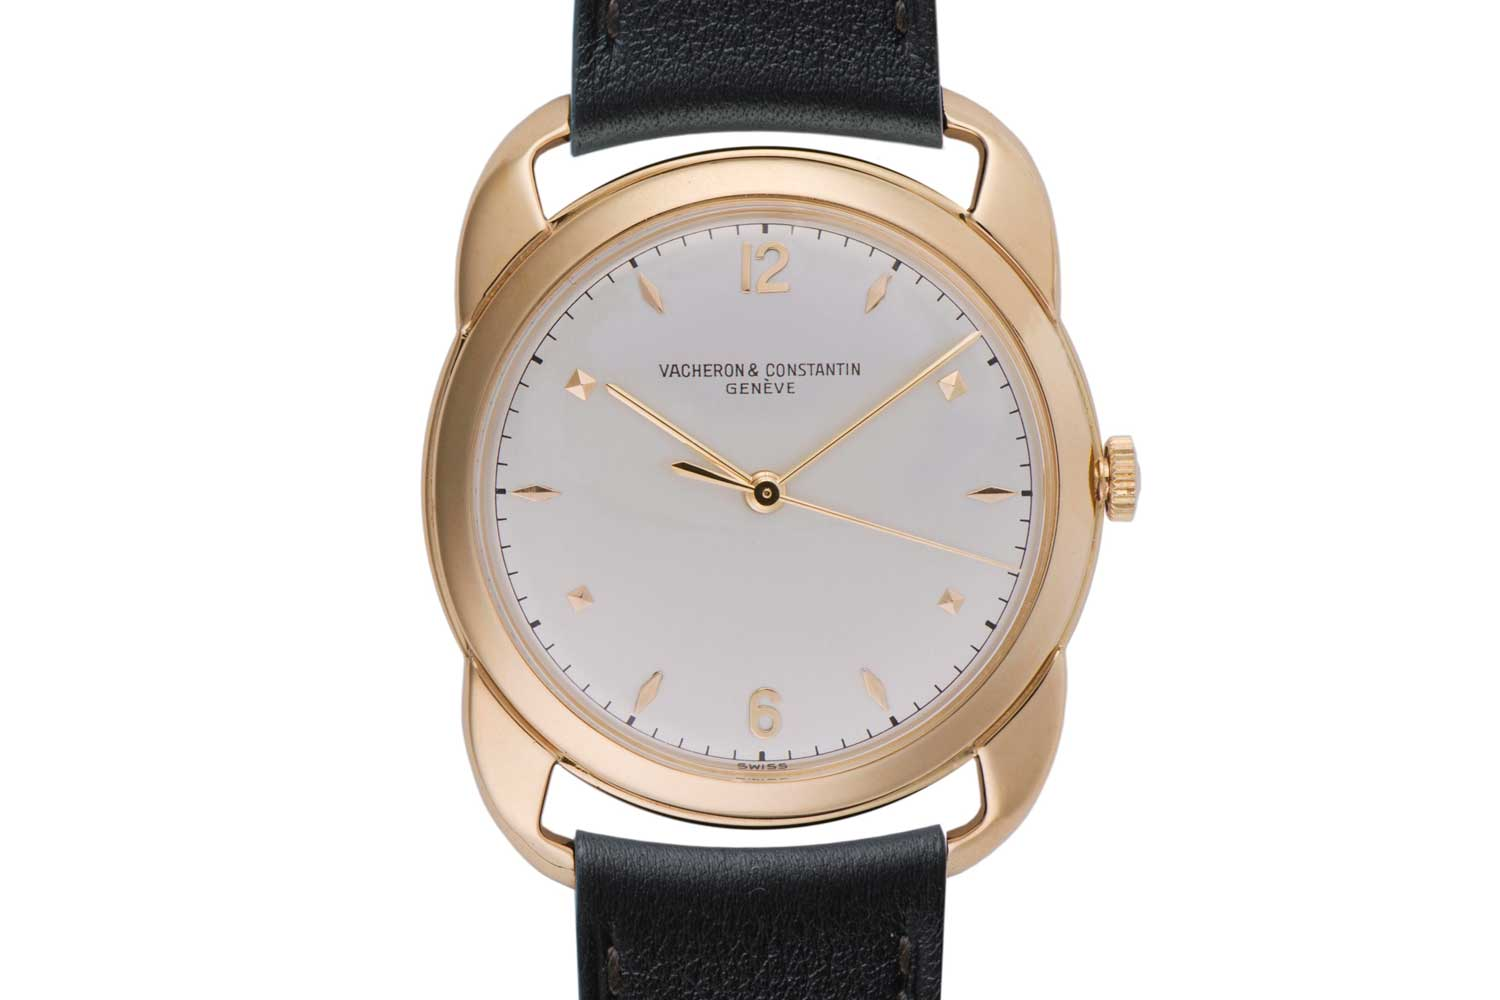 1952: Crab Claw Lug Reference 4659; 18K yellow gold wristwatch silvered dial, 2 Arabic numerals and 10 indexes in gold, central seconds, external minute-circle; this particular piece was sold on day one of the exhibition